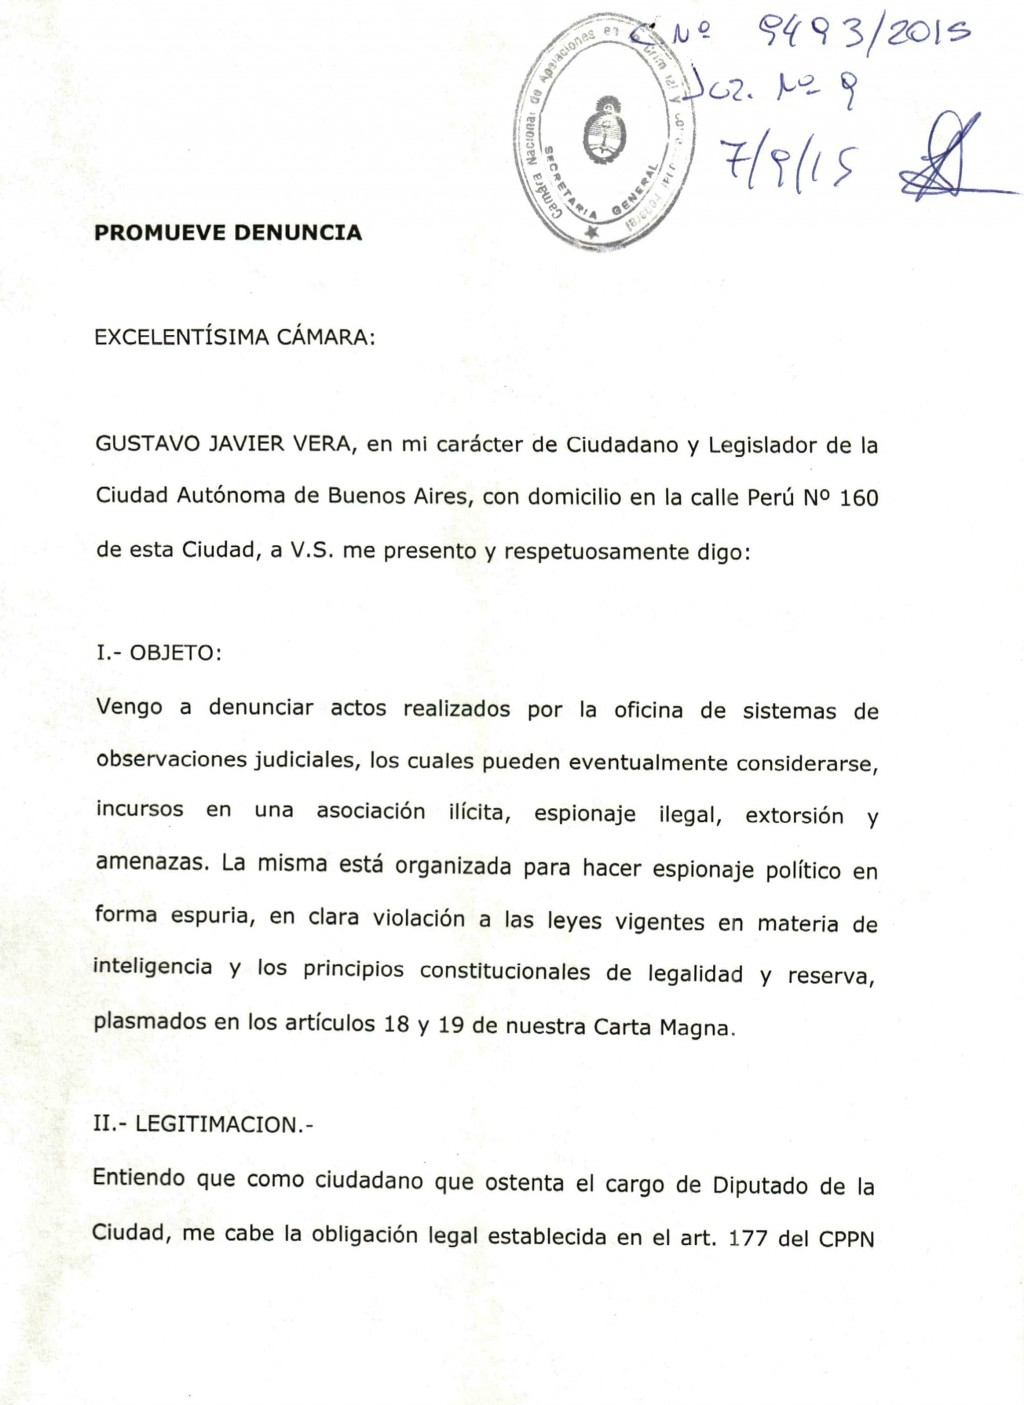 020 Carc3a1tula Denuncia Word Essay Rare 200 Is How Many Pages On Respect 200-300 Example Large